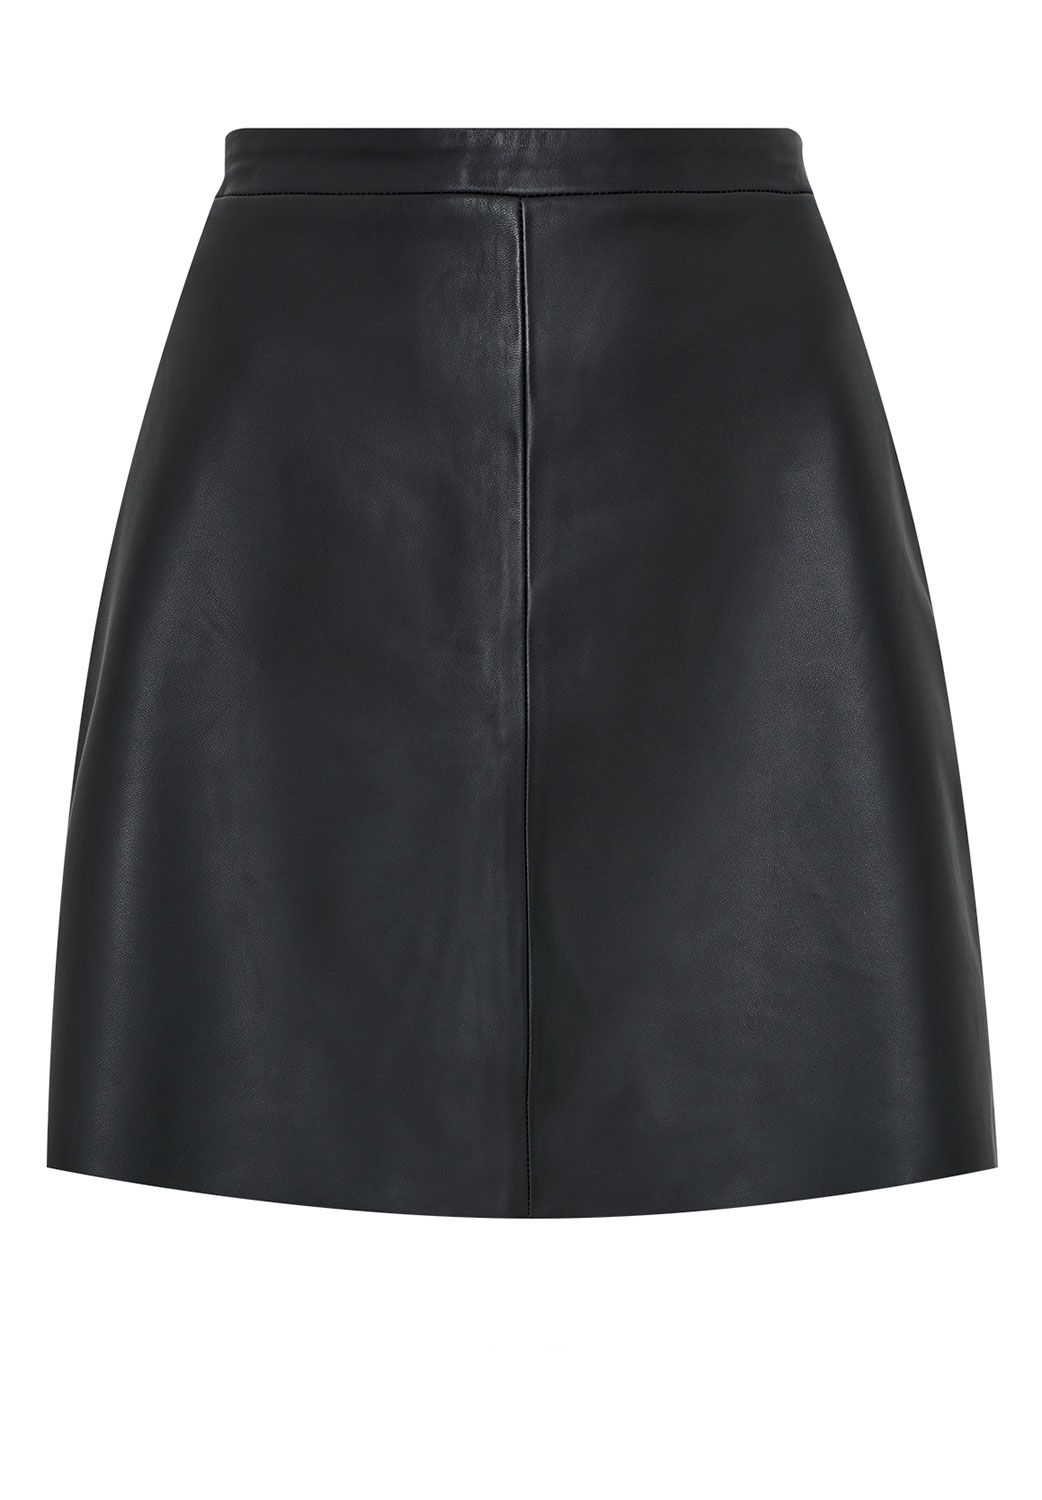 Hallhuber A-line skirt made of nappa leather, Black